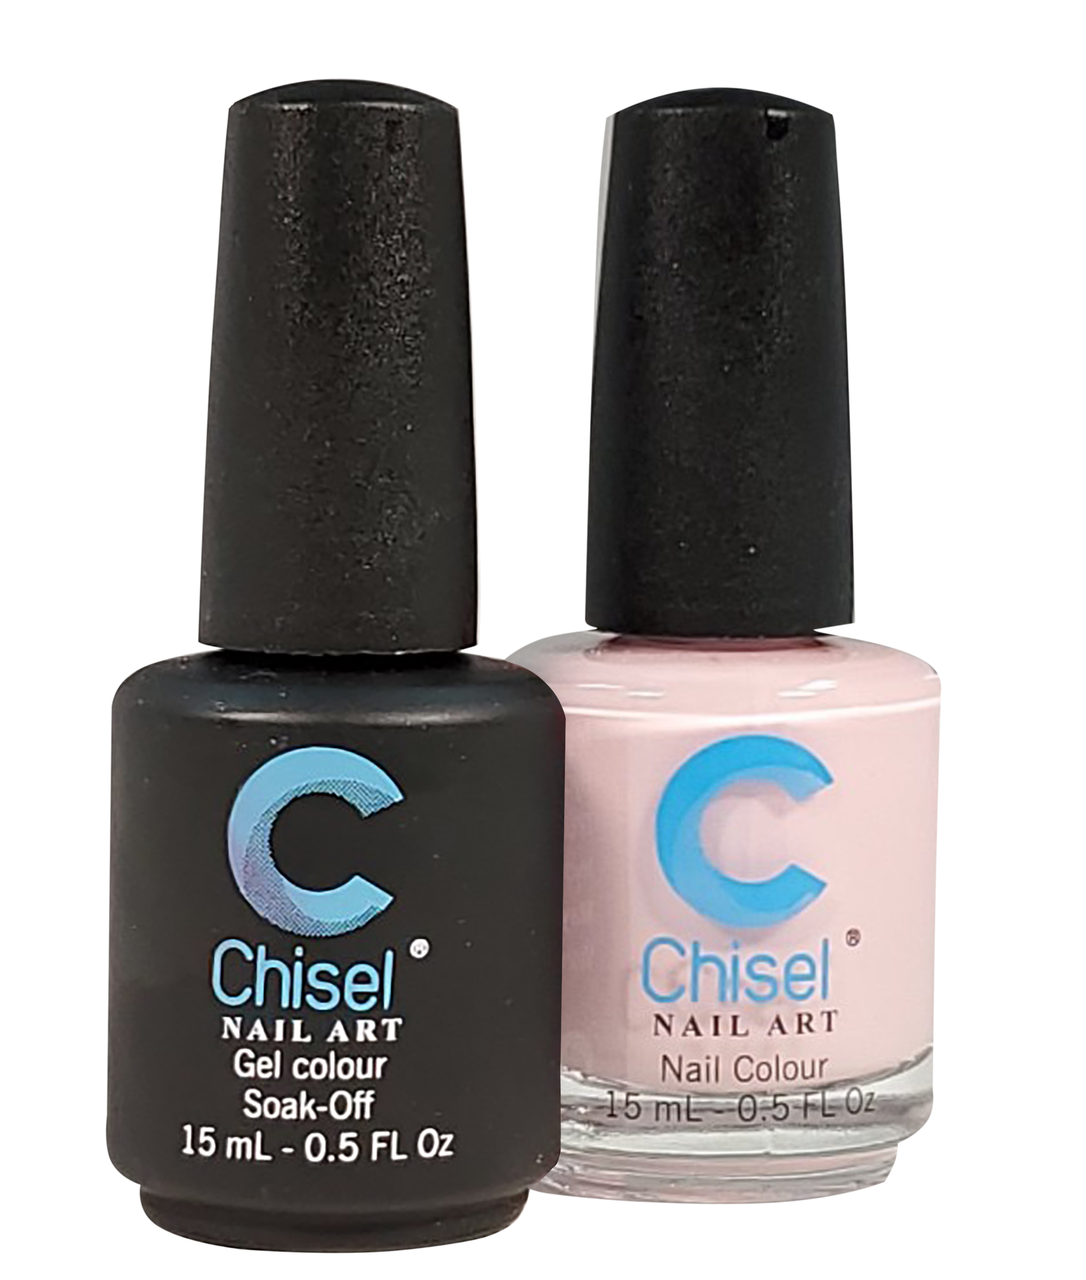 Chisel Matching Gel + Lacquer Duo - Solid 15